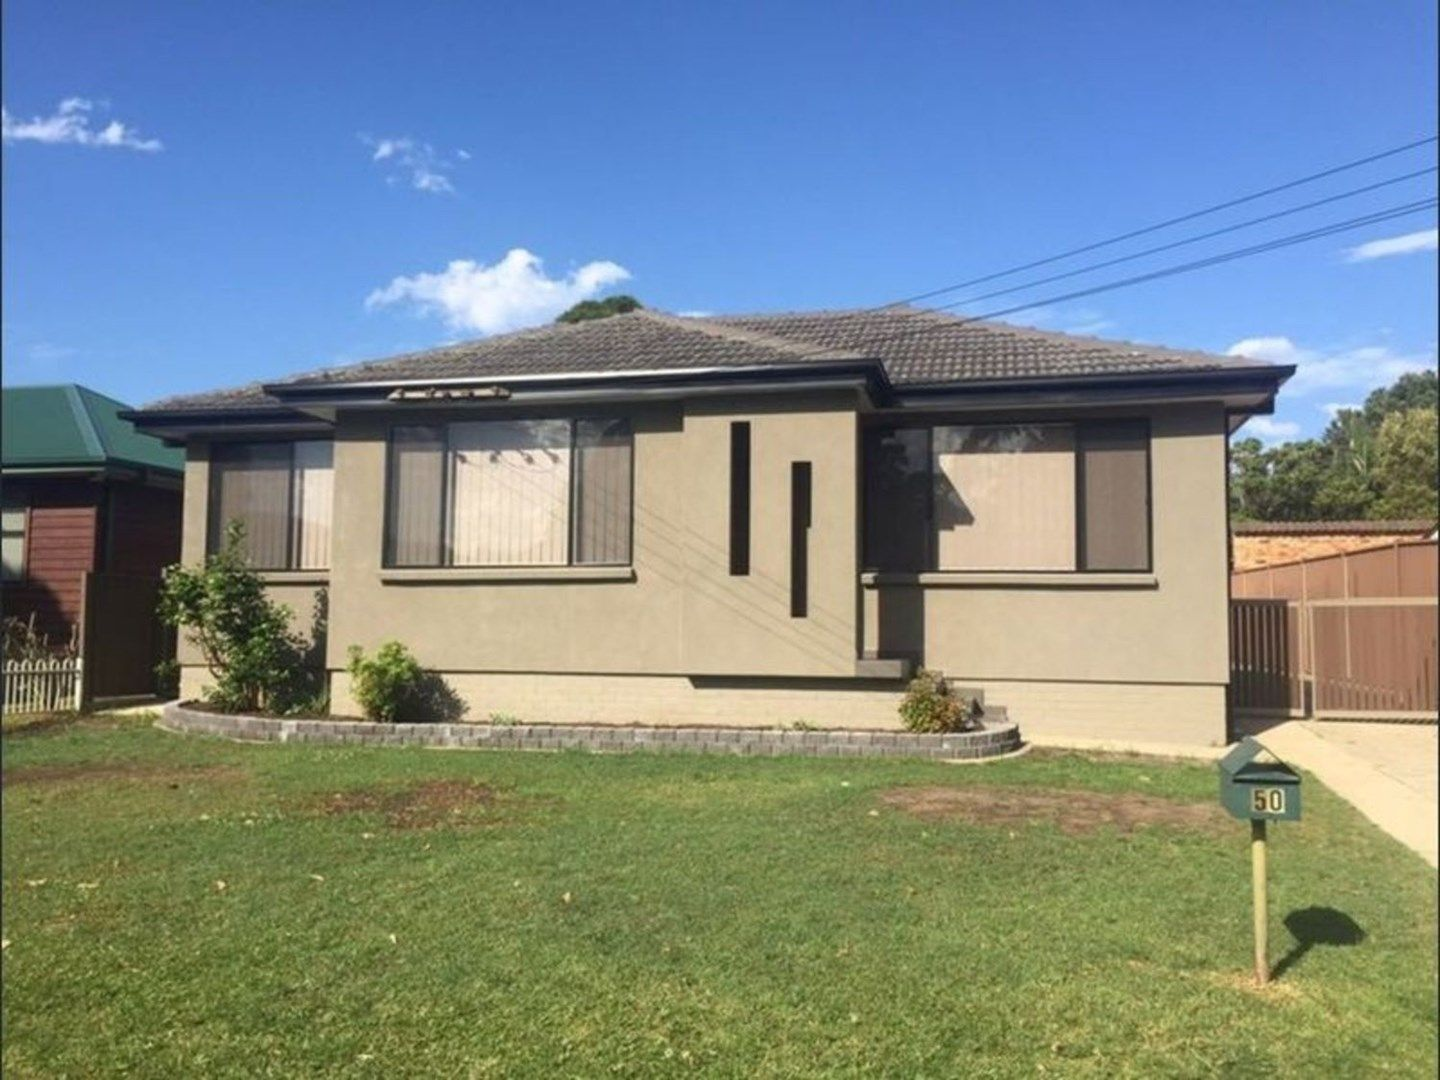 50 Thames Street, Wollongong NSW 2500, Image 0